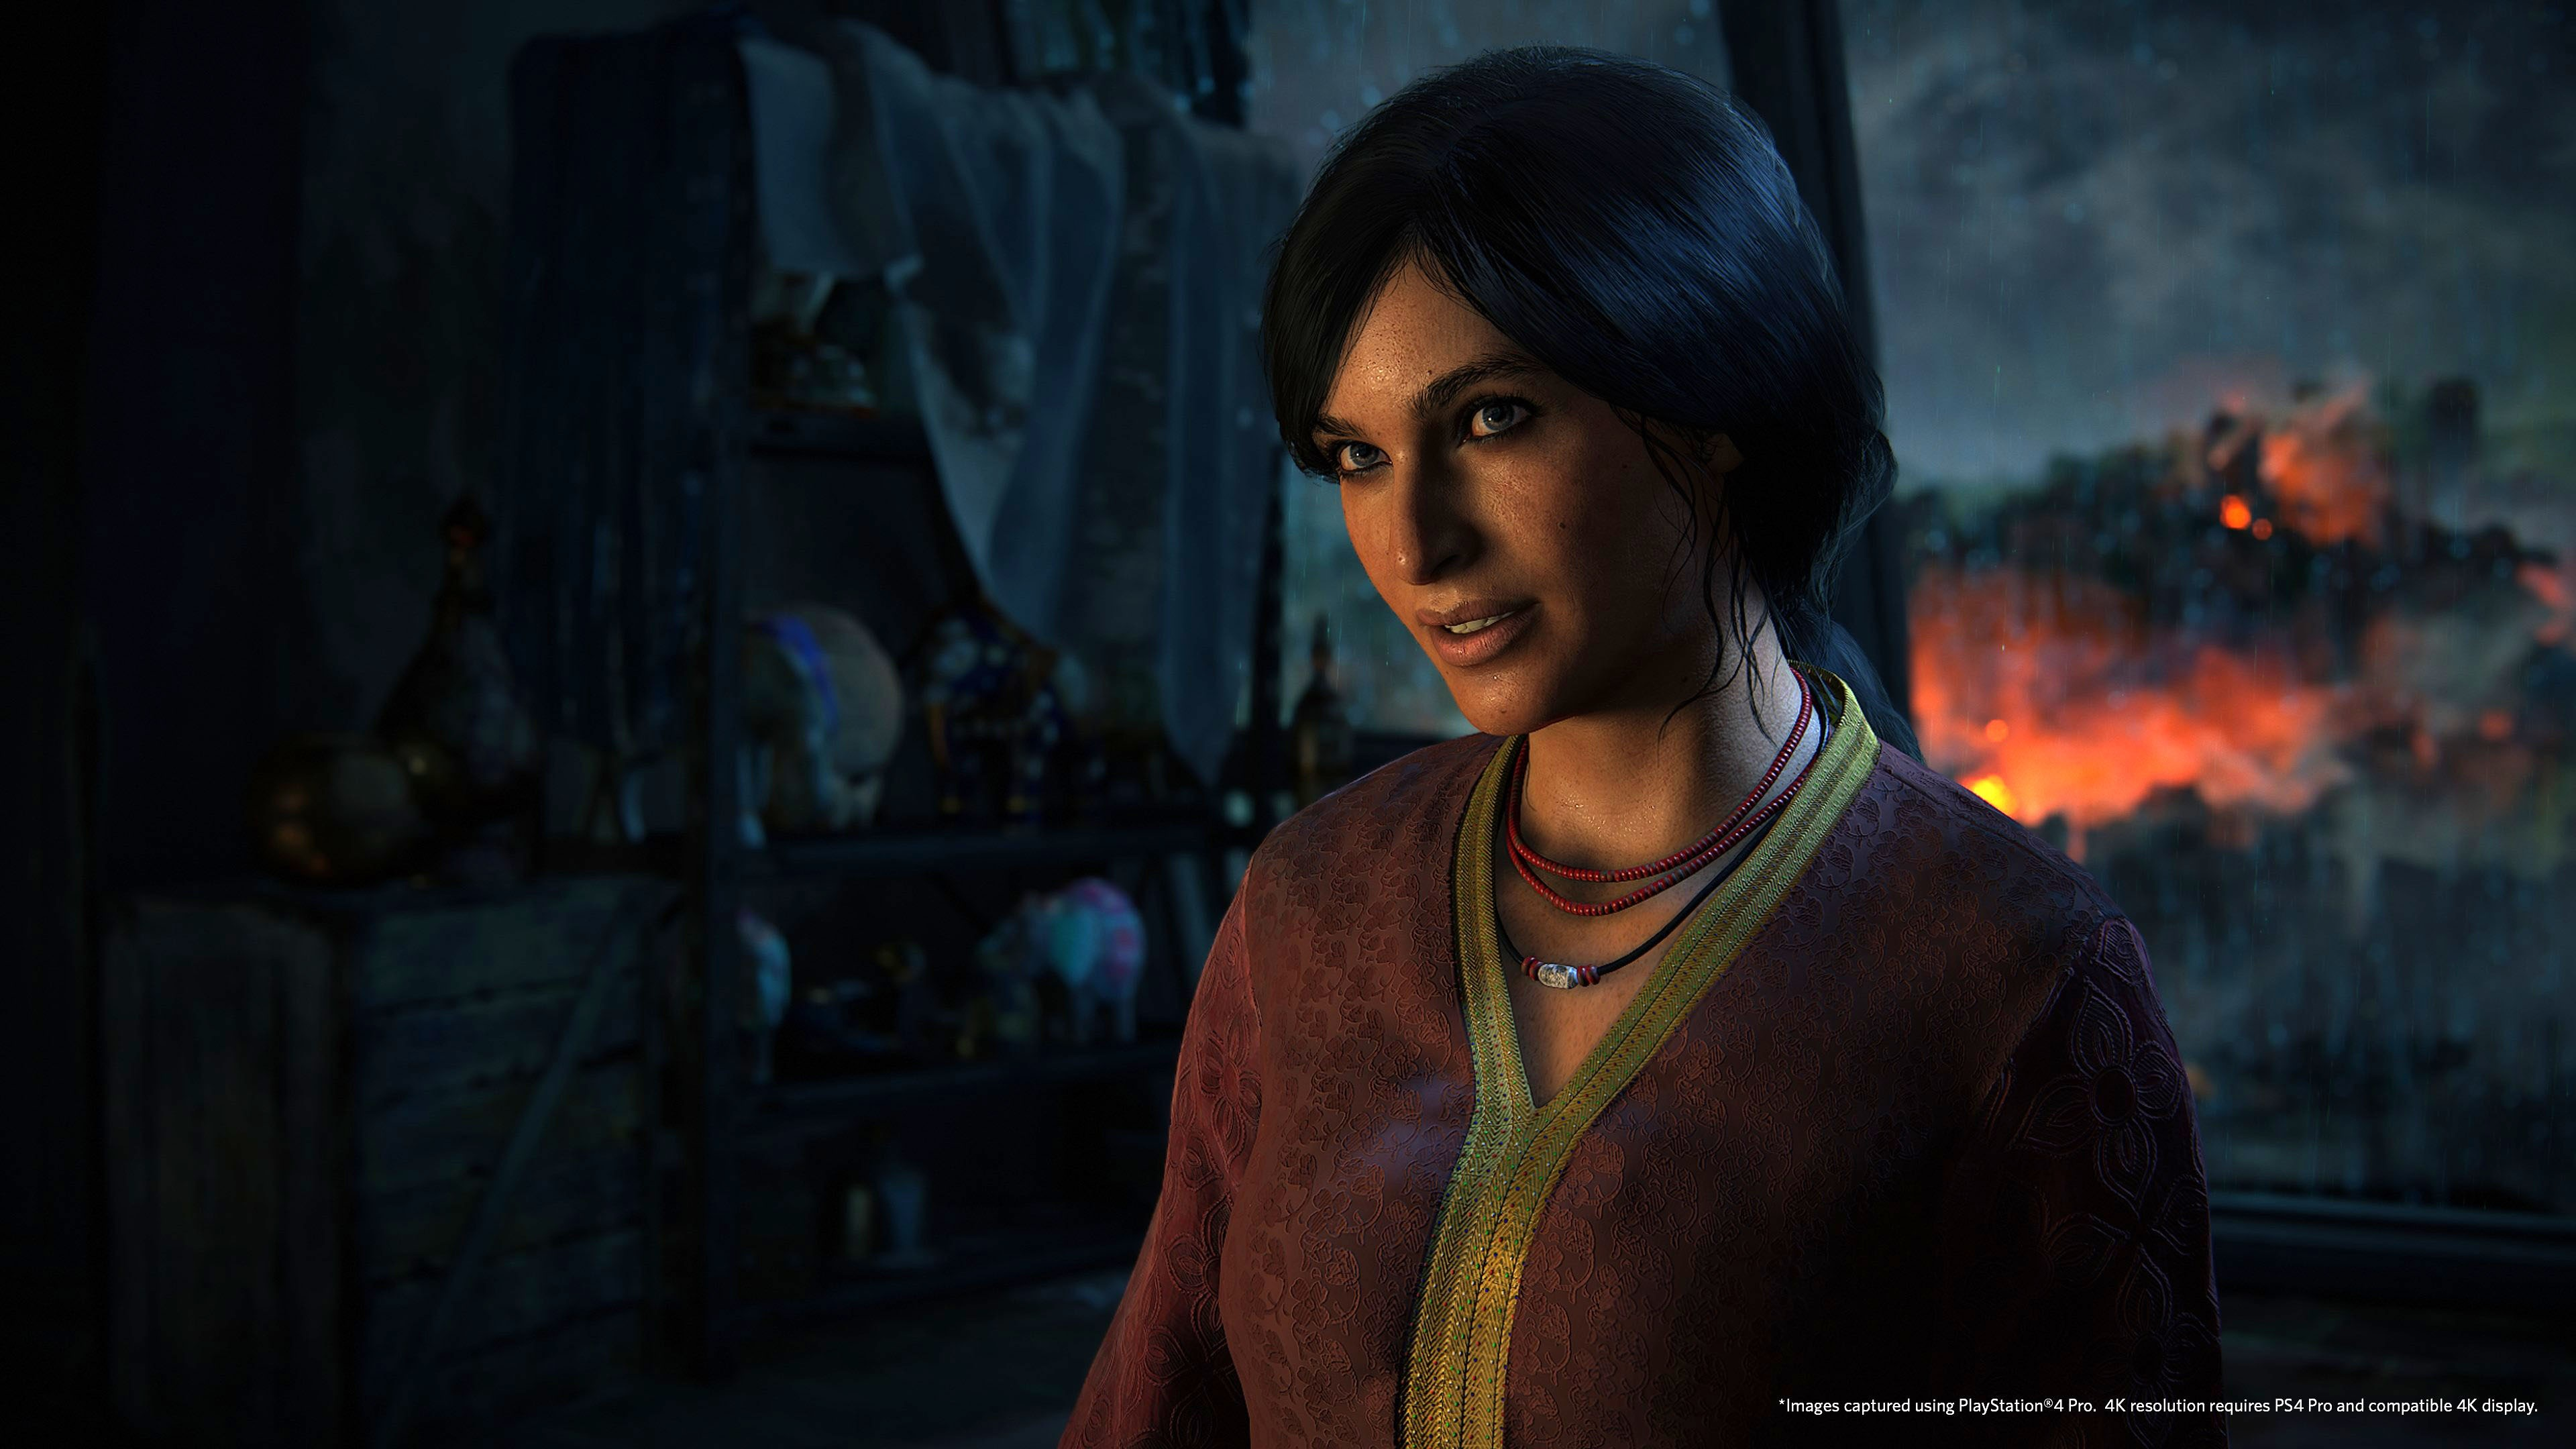 Uncharted Lost Legacy Wallpaper: Wallpaper Uncharted: The Lost Legacy, 4k, PS4 Pro